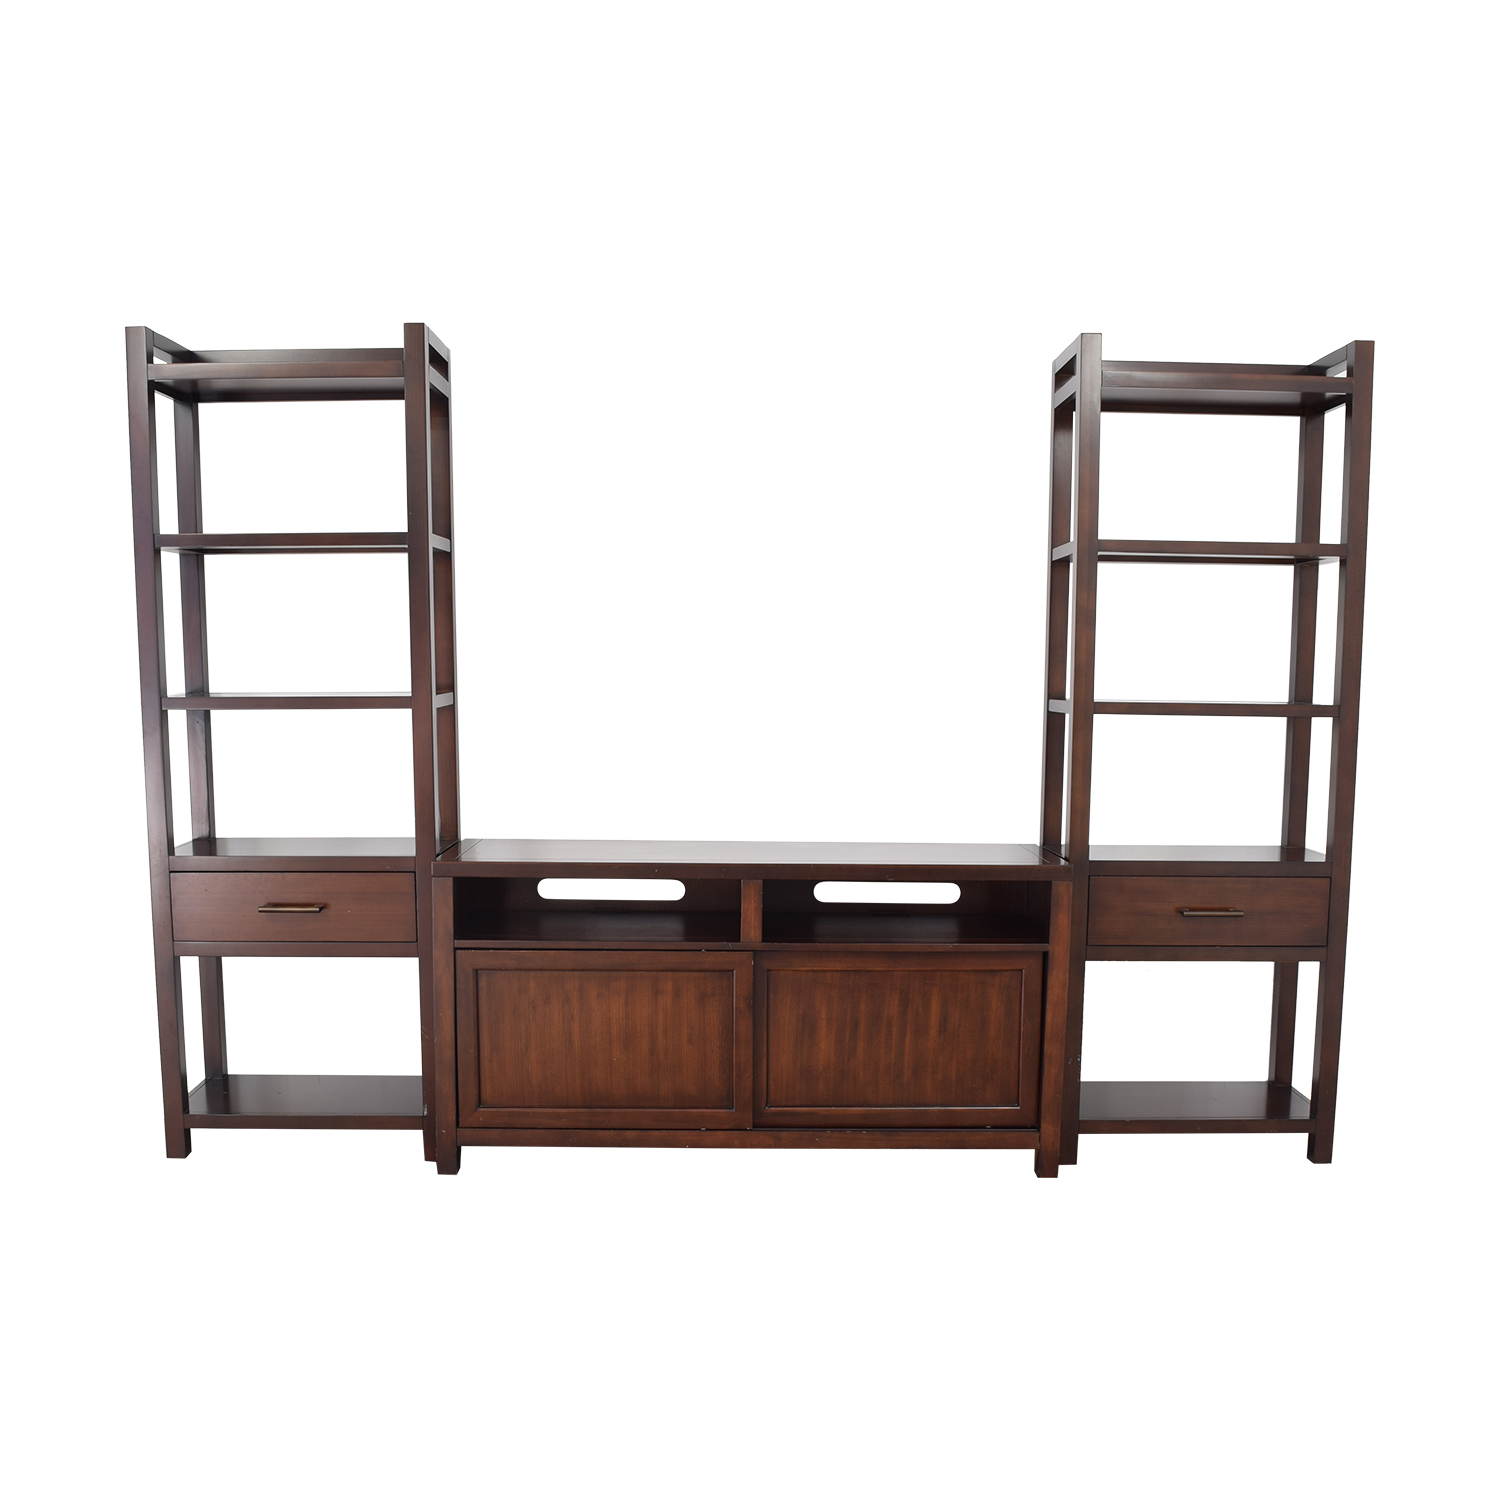 buy Crate & Barrel Media Console with Two Towers Crate & Barrel Storage